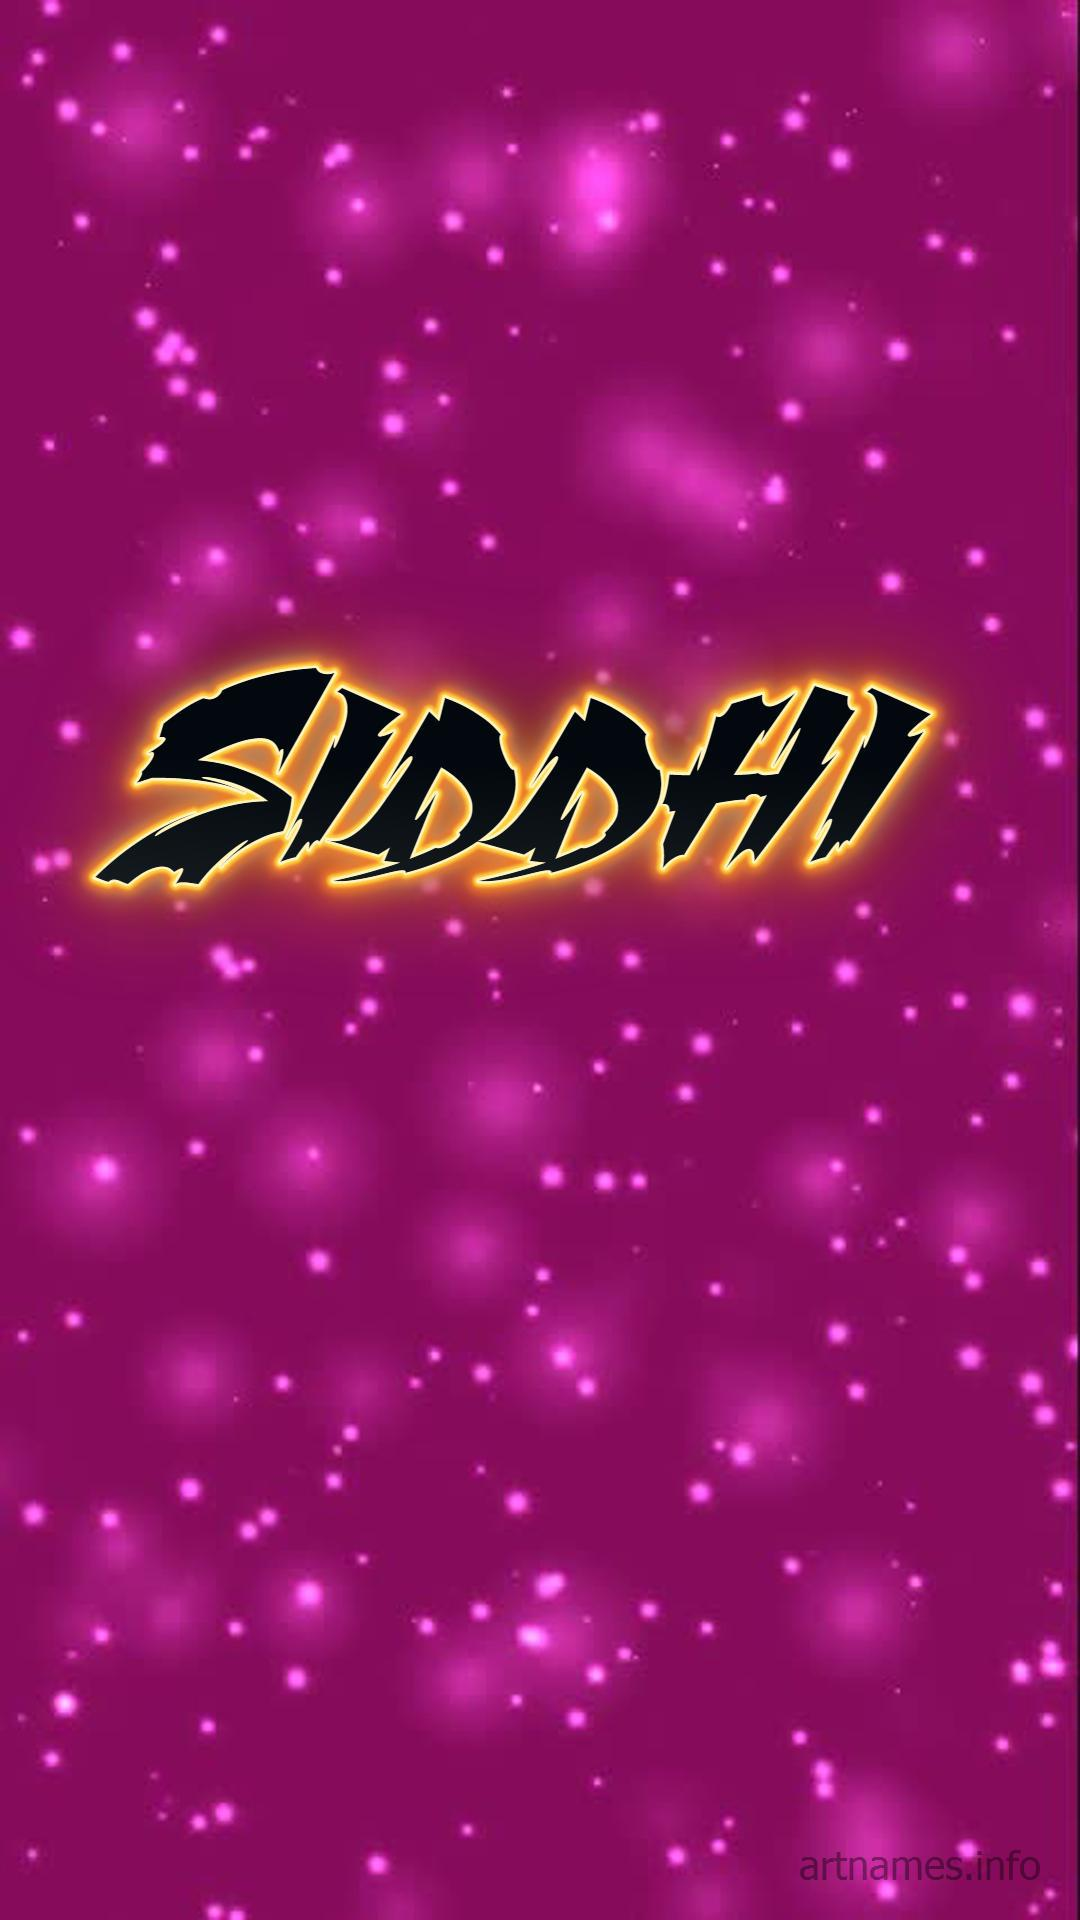 Siddhi As A Art Name Wallpaper Artnames We have exclusive murals and rajasthani paintings made apart from this we have specialist for ciphorx, center table, name plates, abstact, designer mirror's. artnames